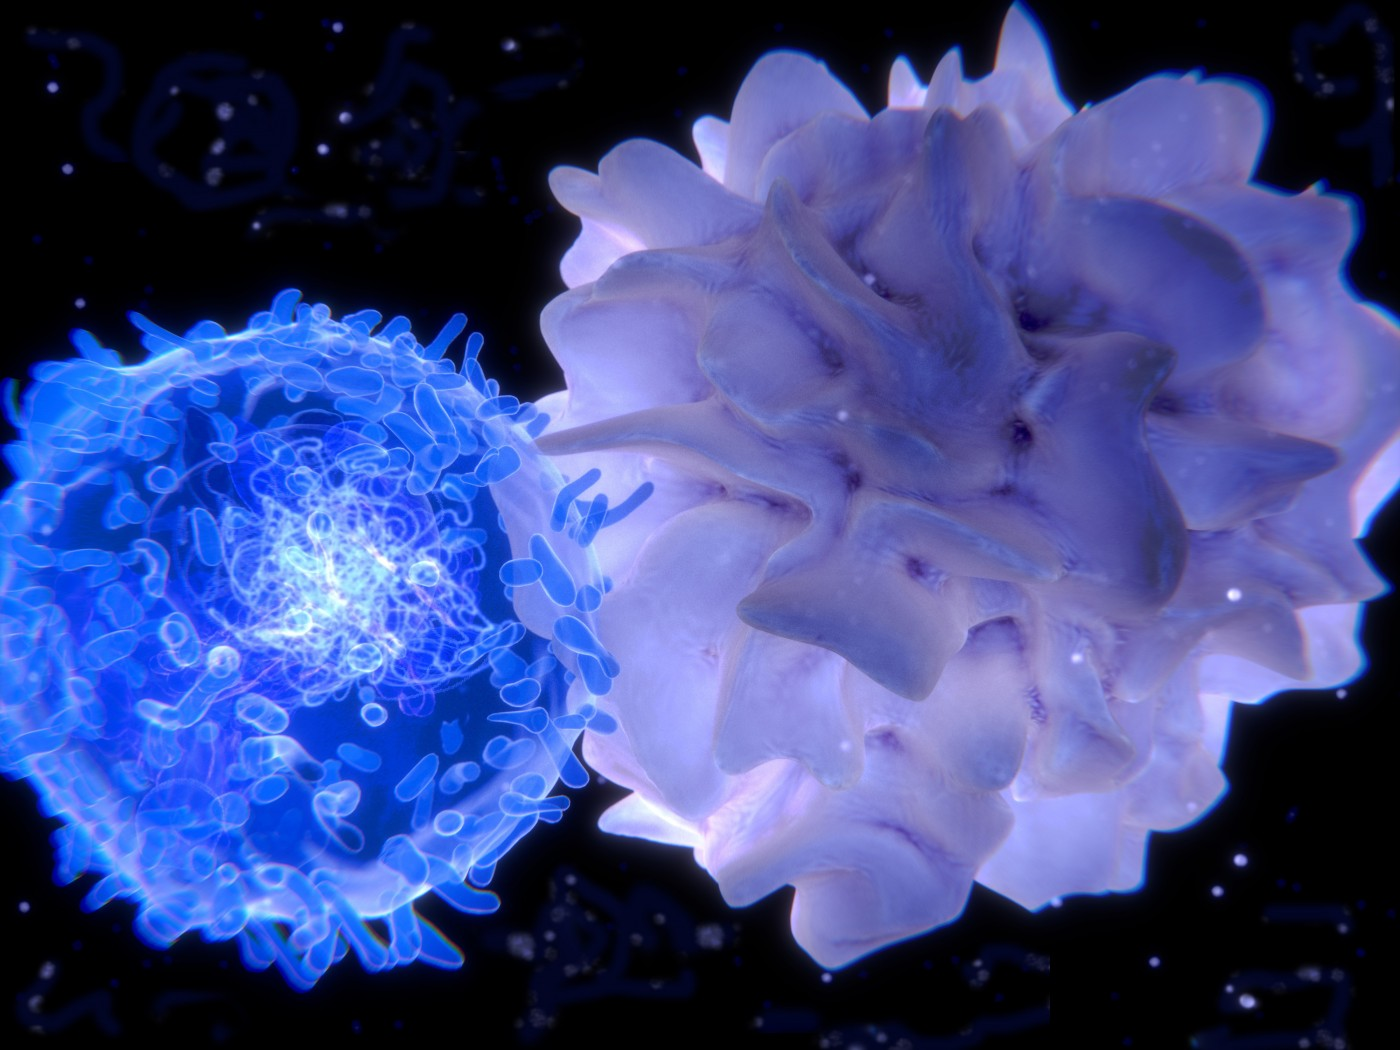 Activated T-cells